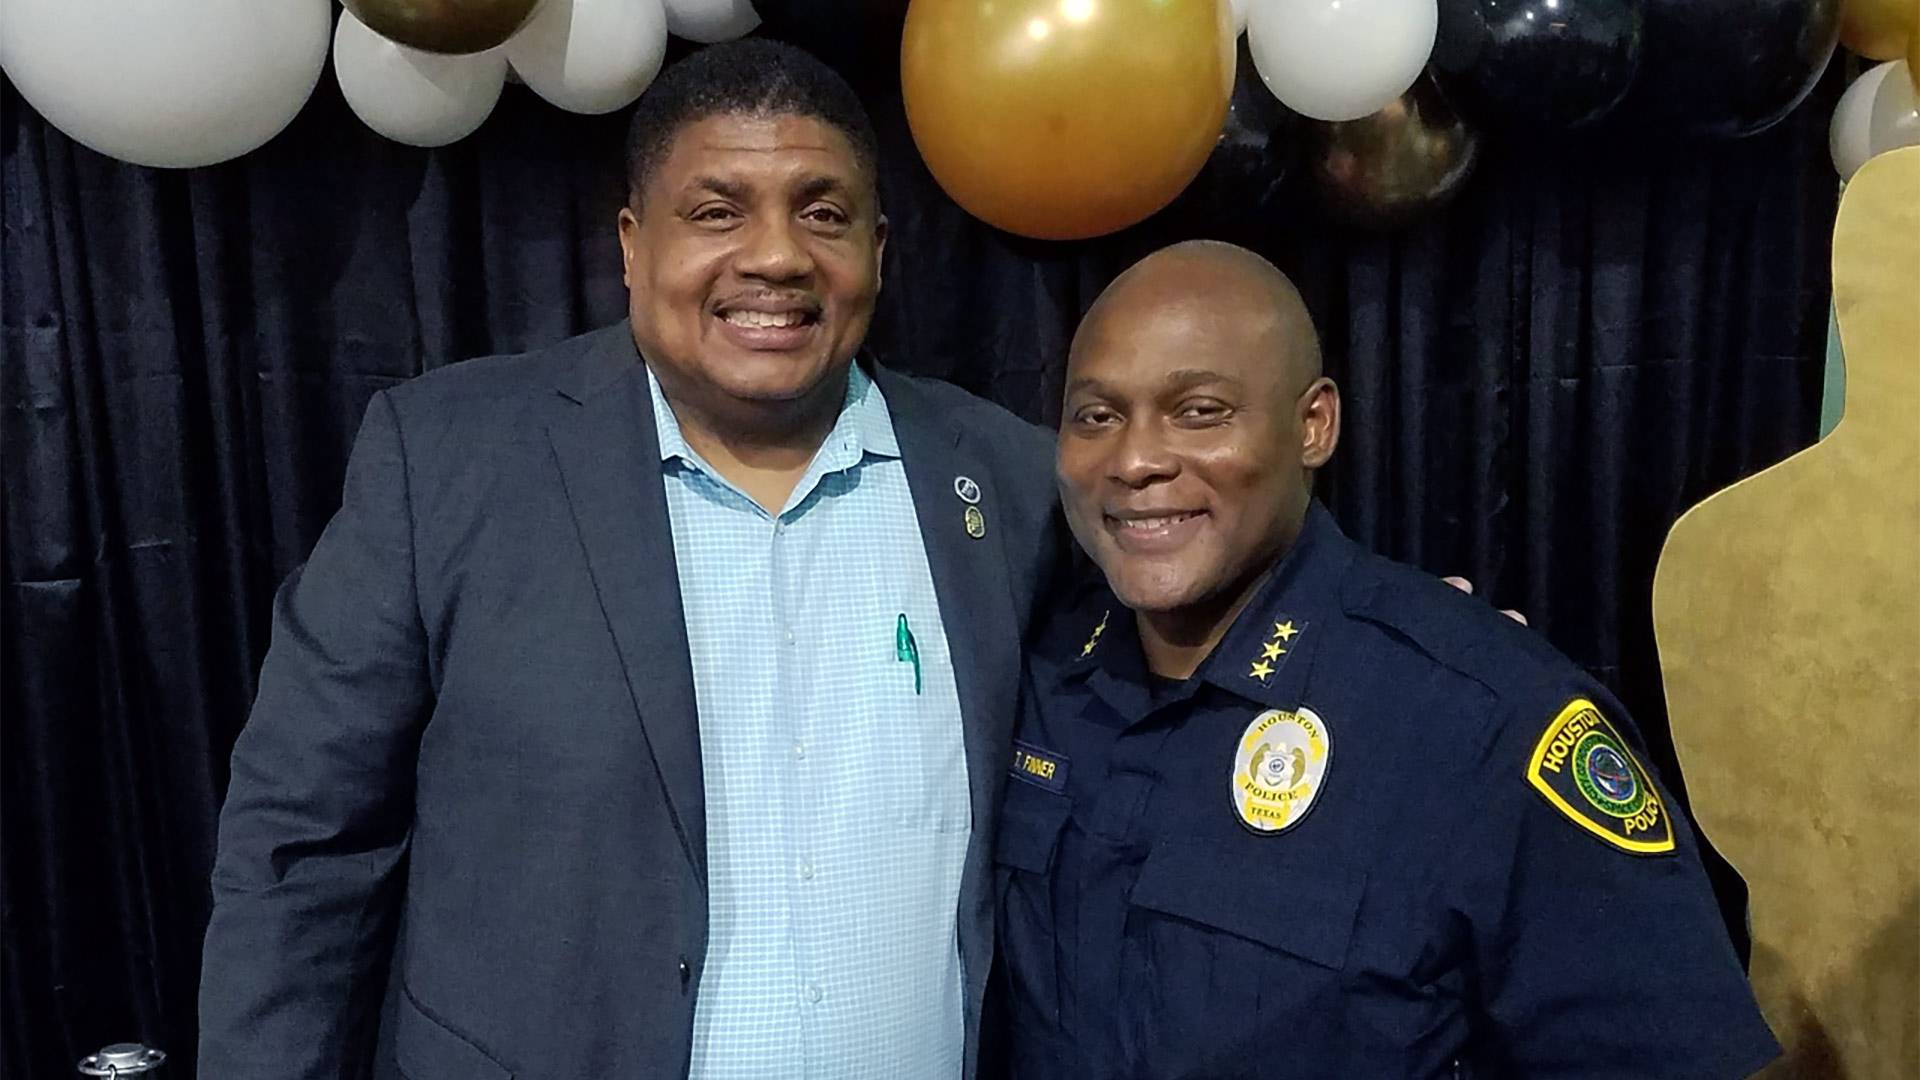 Troy Finner is second UHCL alum to become Houston police chief